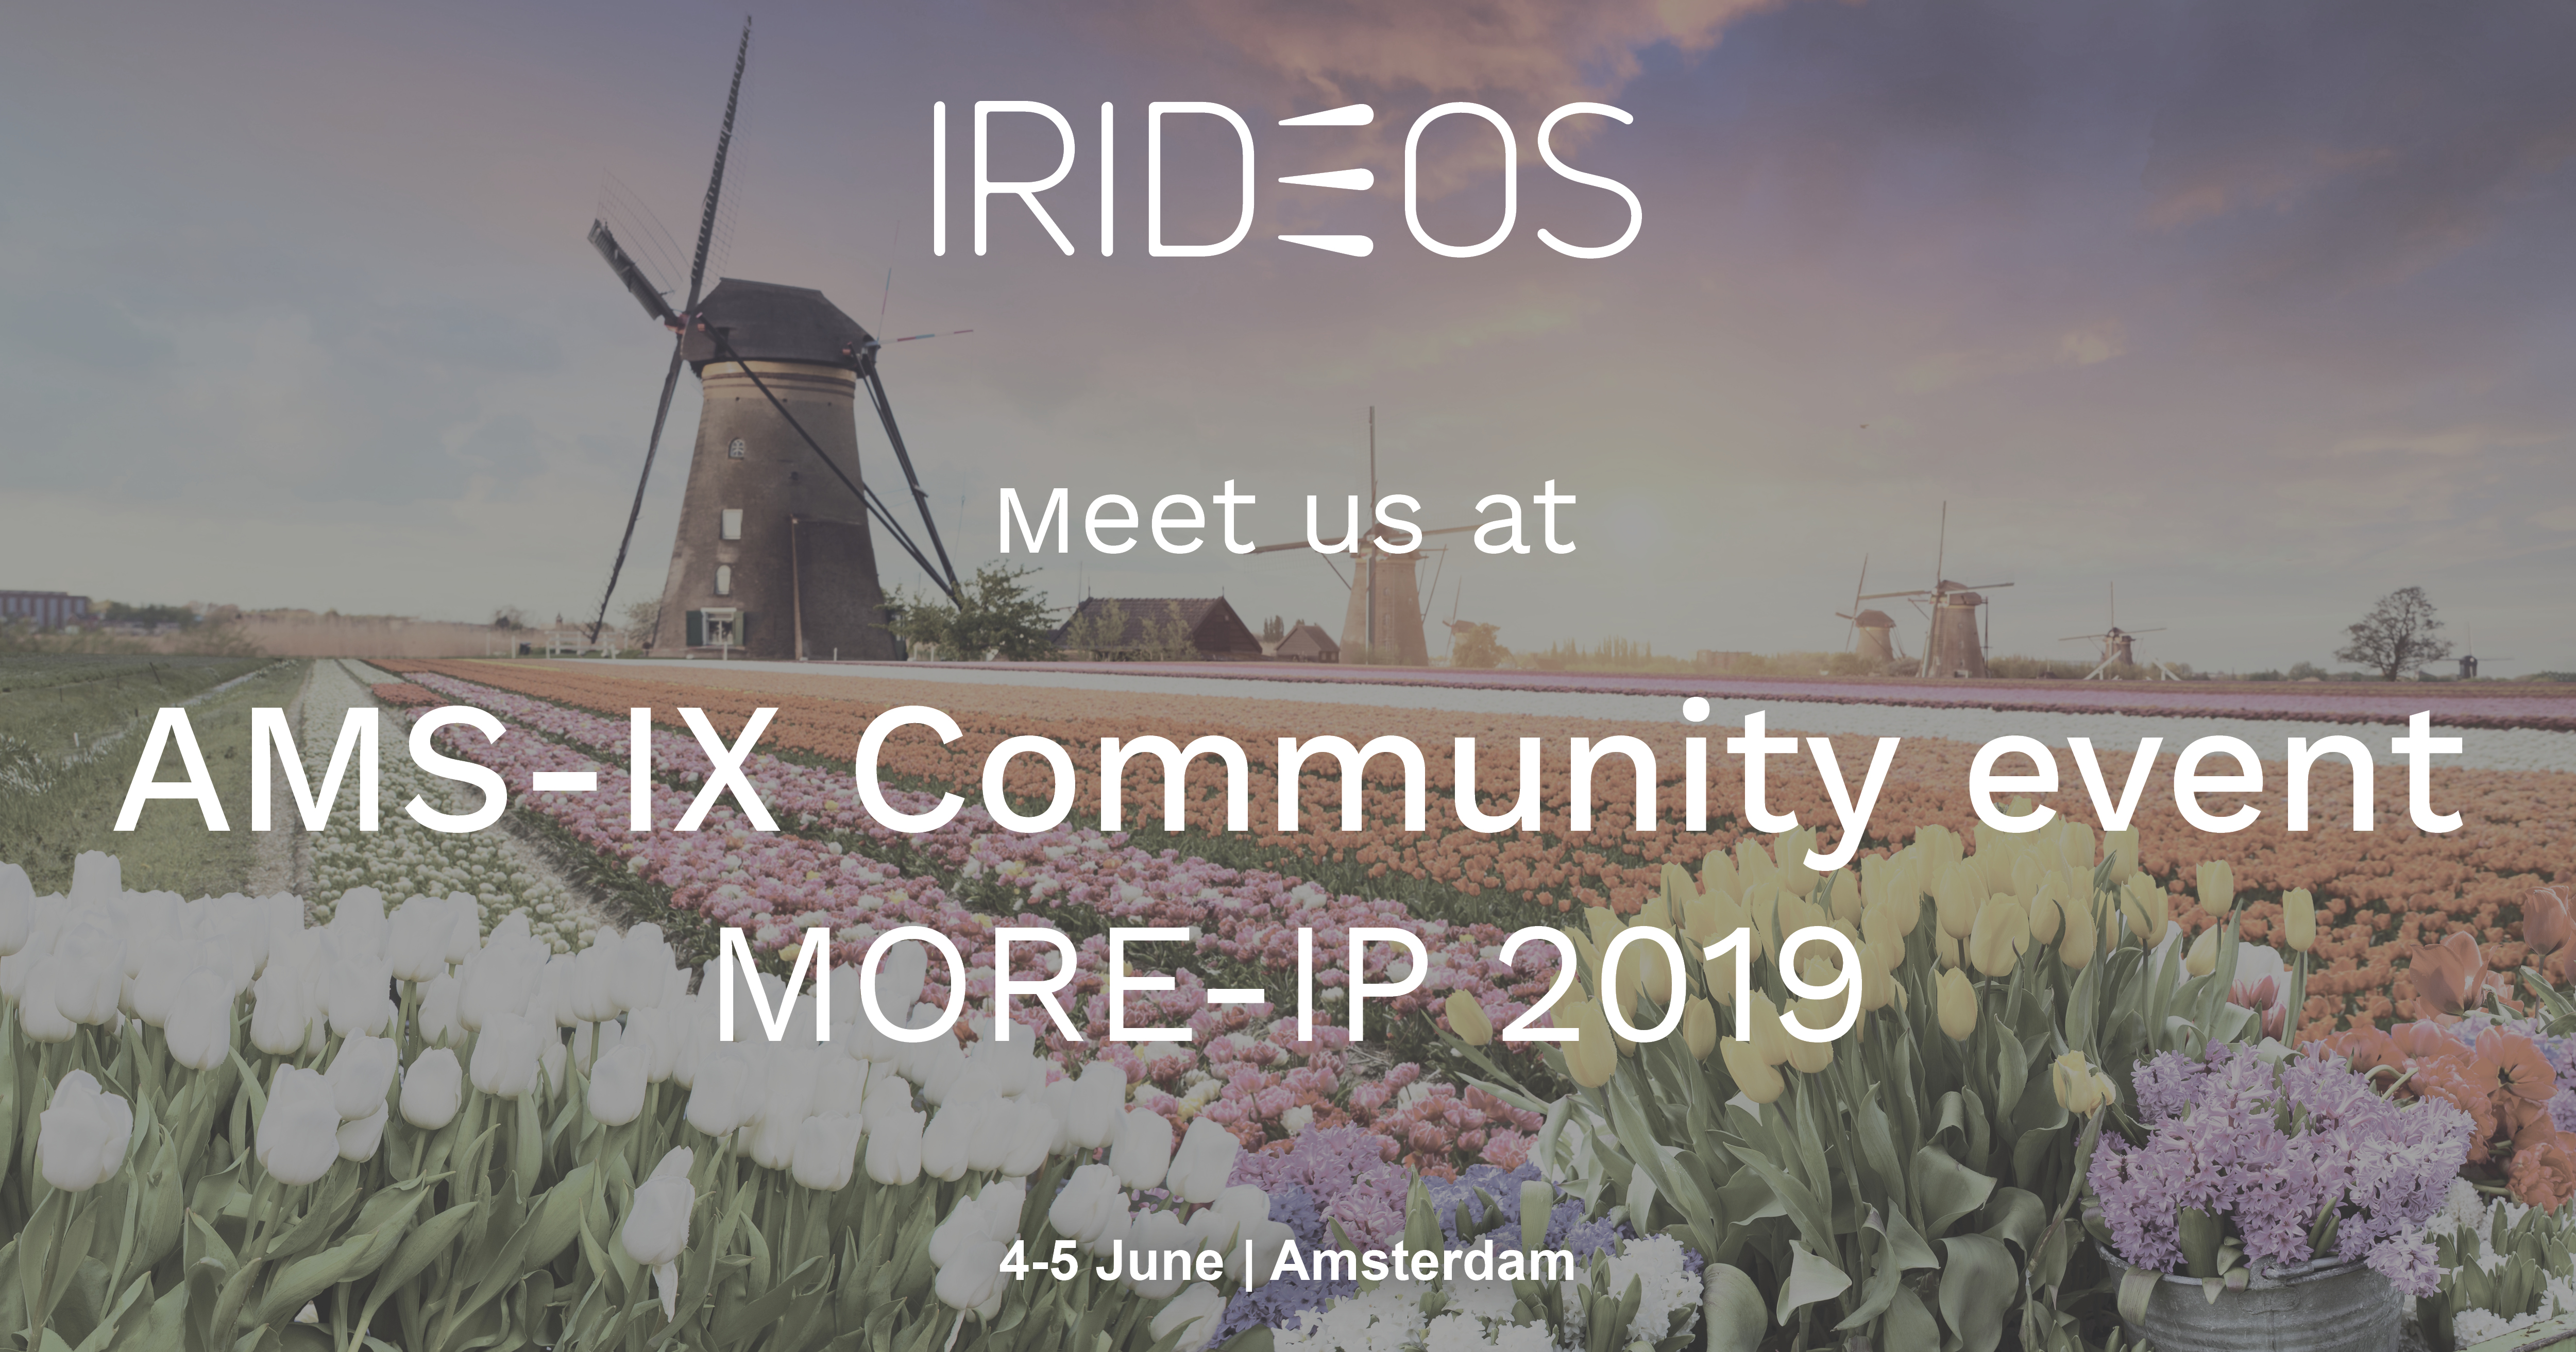 IRIDEOS takes part in MORE-IP, Amsterdam